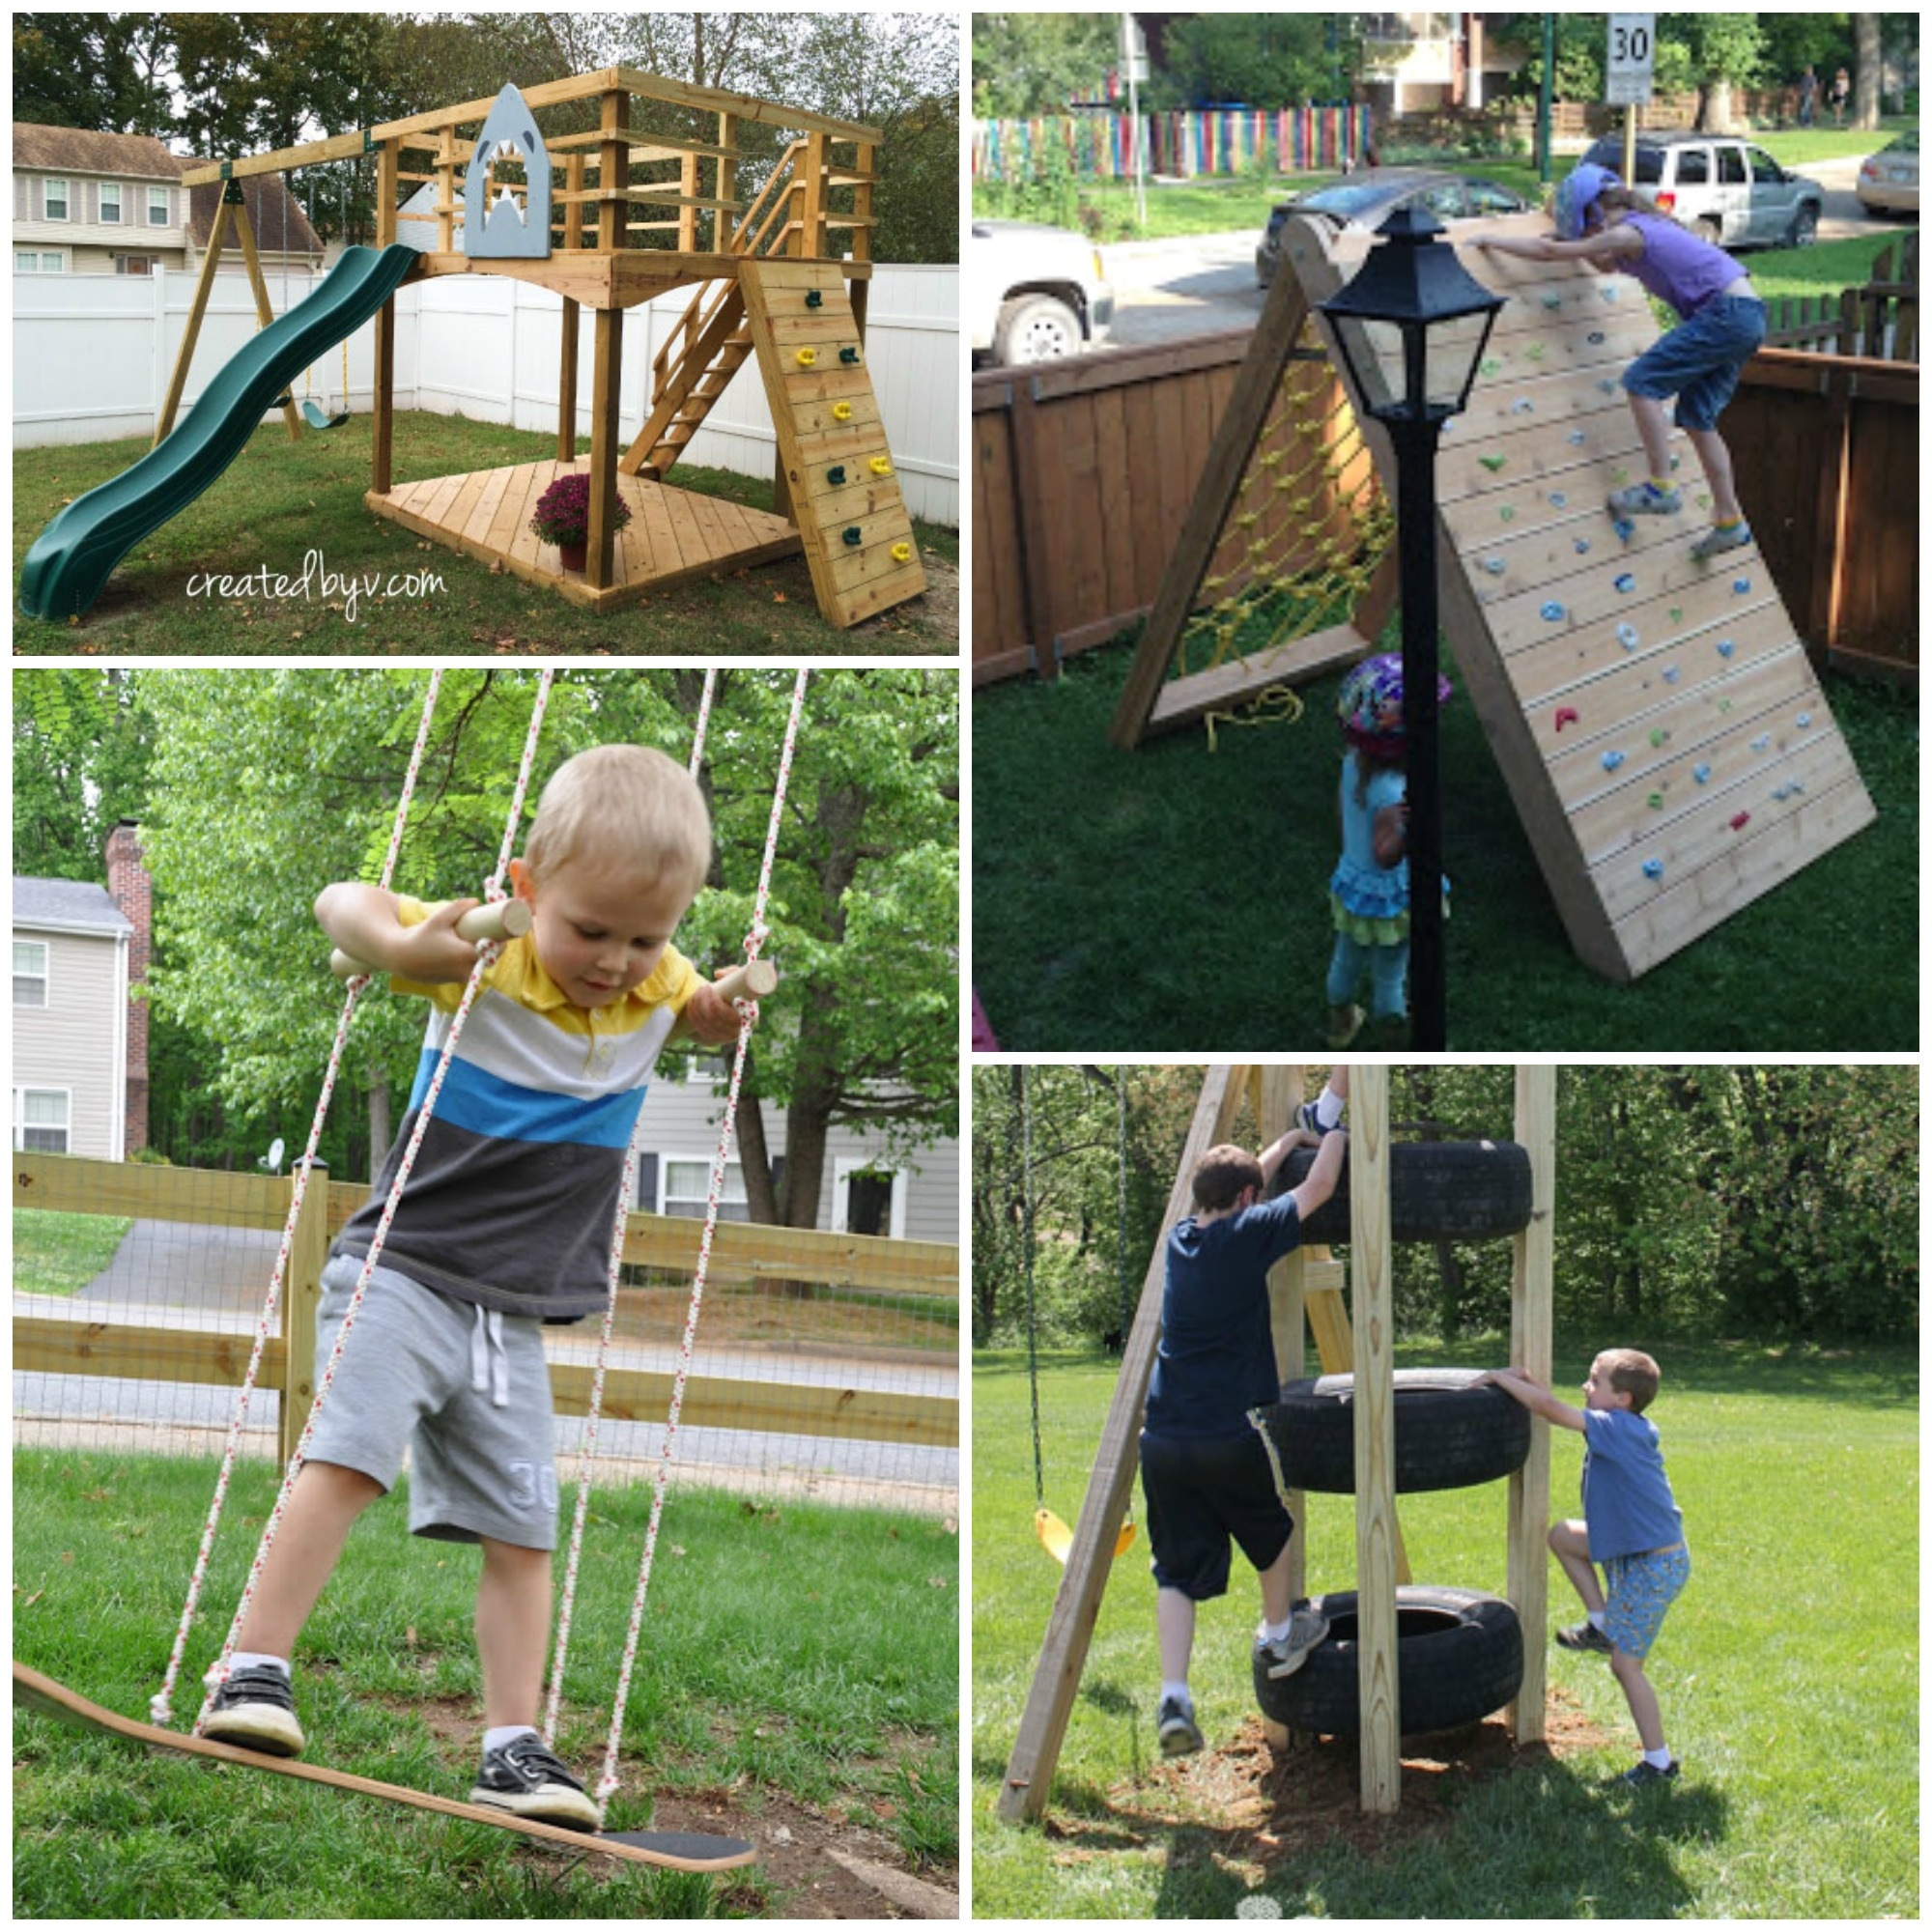 Gracious Outdoor Projects Your Outdoor Play Space Backyard Diy Projects Book Backyard Diy Projects Kids Backyard Diy Projects outdoor Backyard Diy Projects